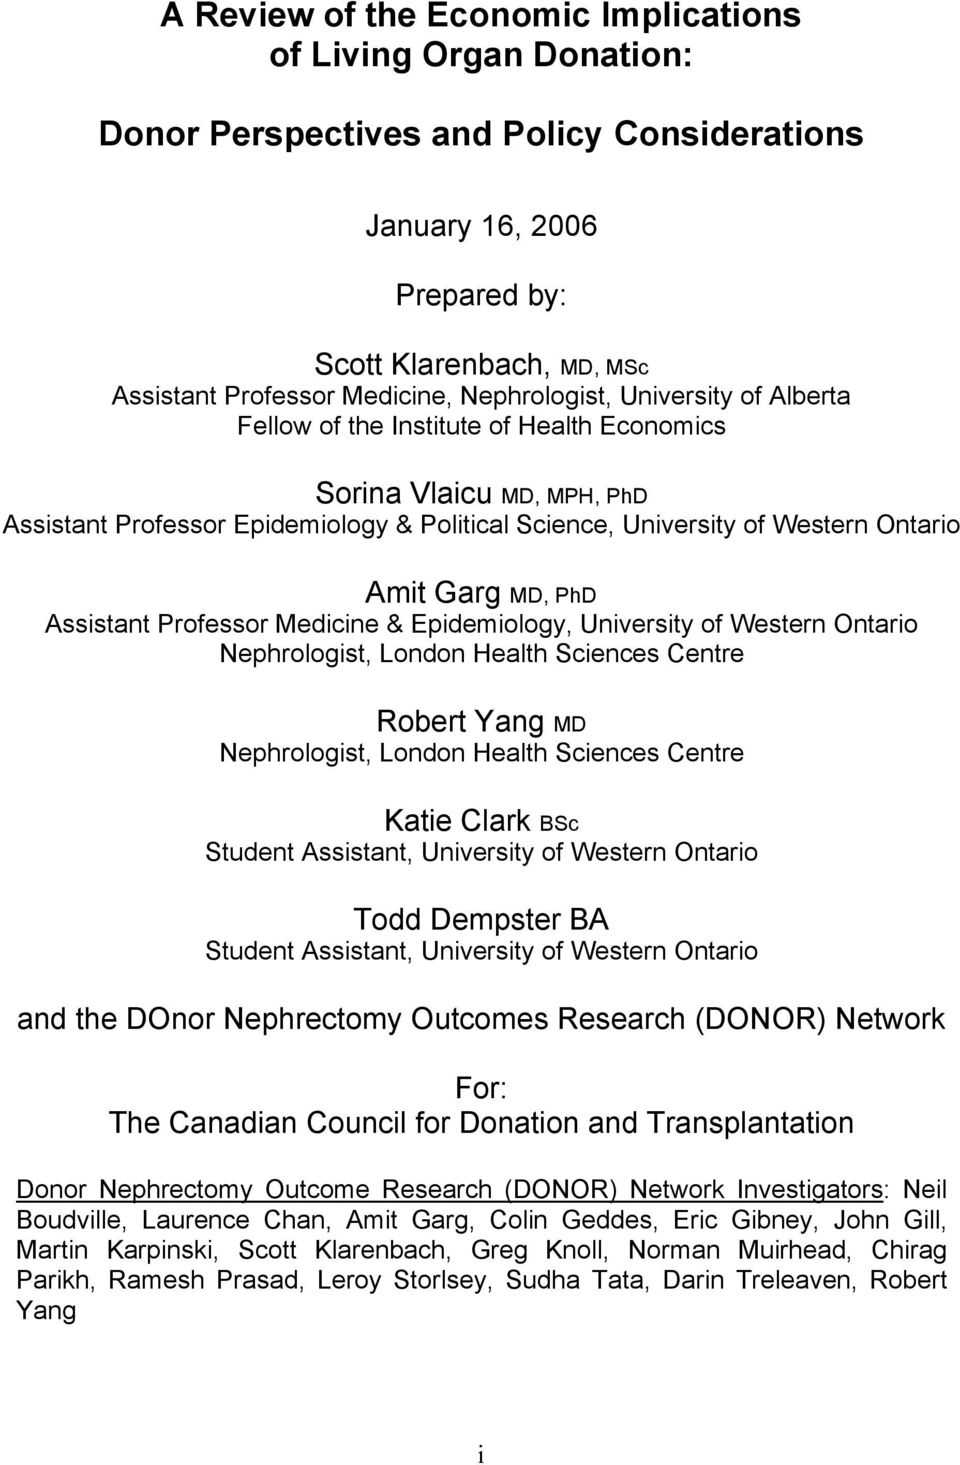 Garg MD, PhD Assistant Professor Medicine & Epidemiology, University of Western Ontario Nephrologist, London Health Sciences Centre Robert Yang MD Nephrologist, London Health Sciences Centre Katie